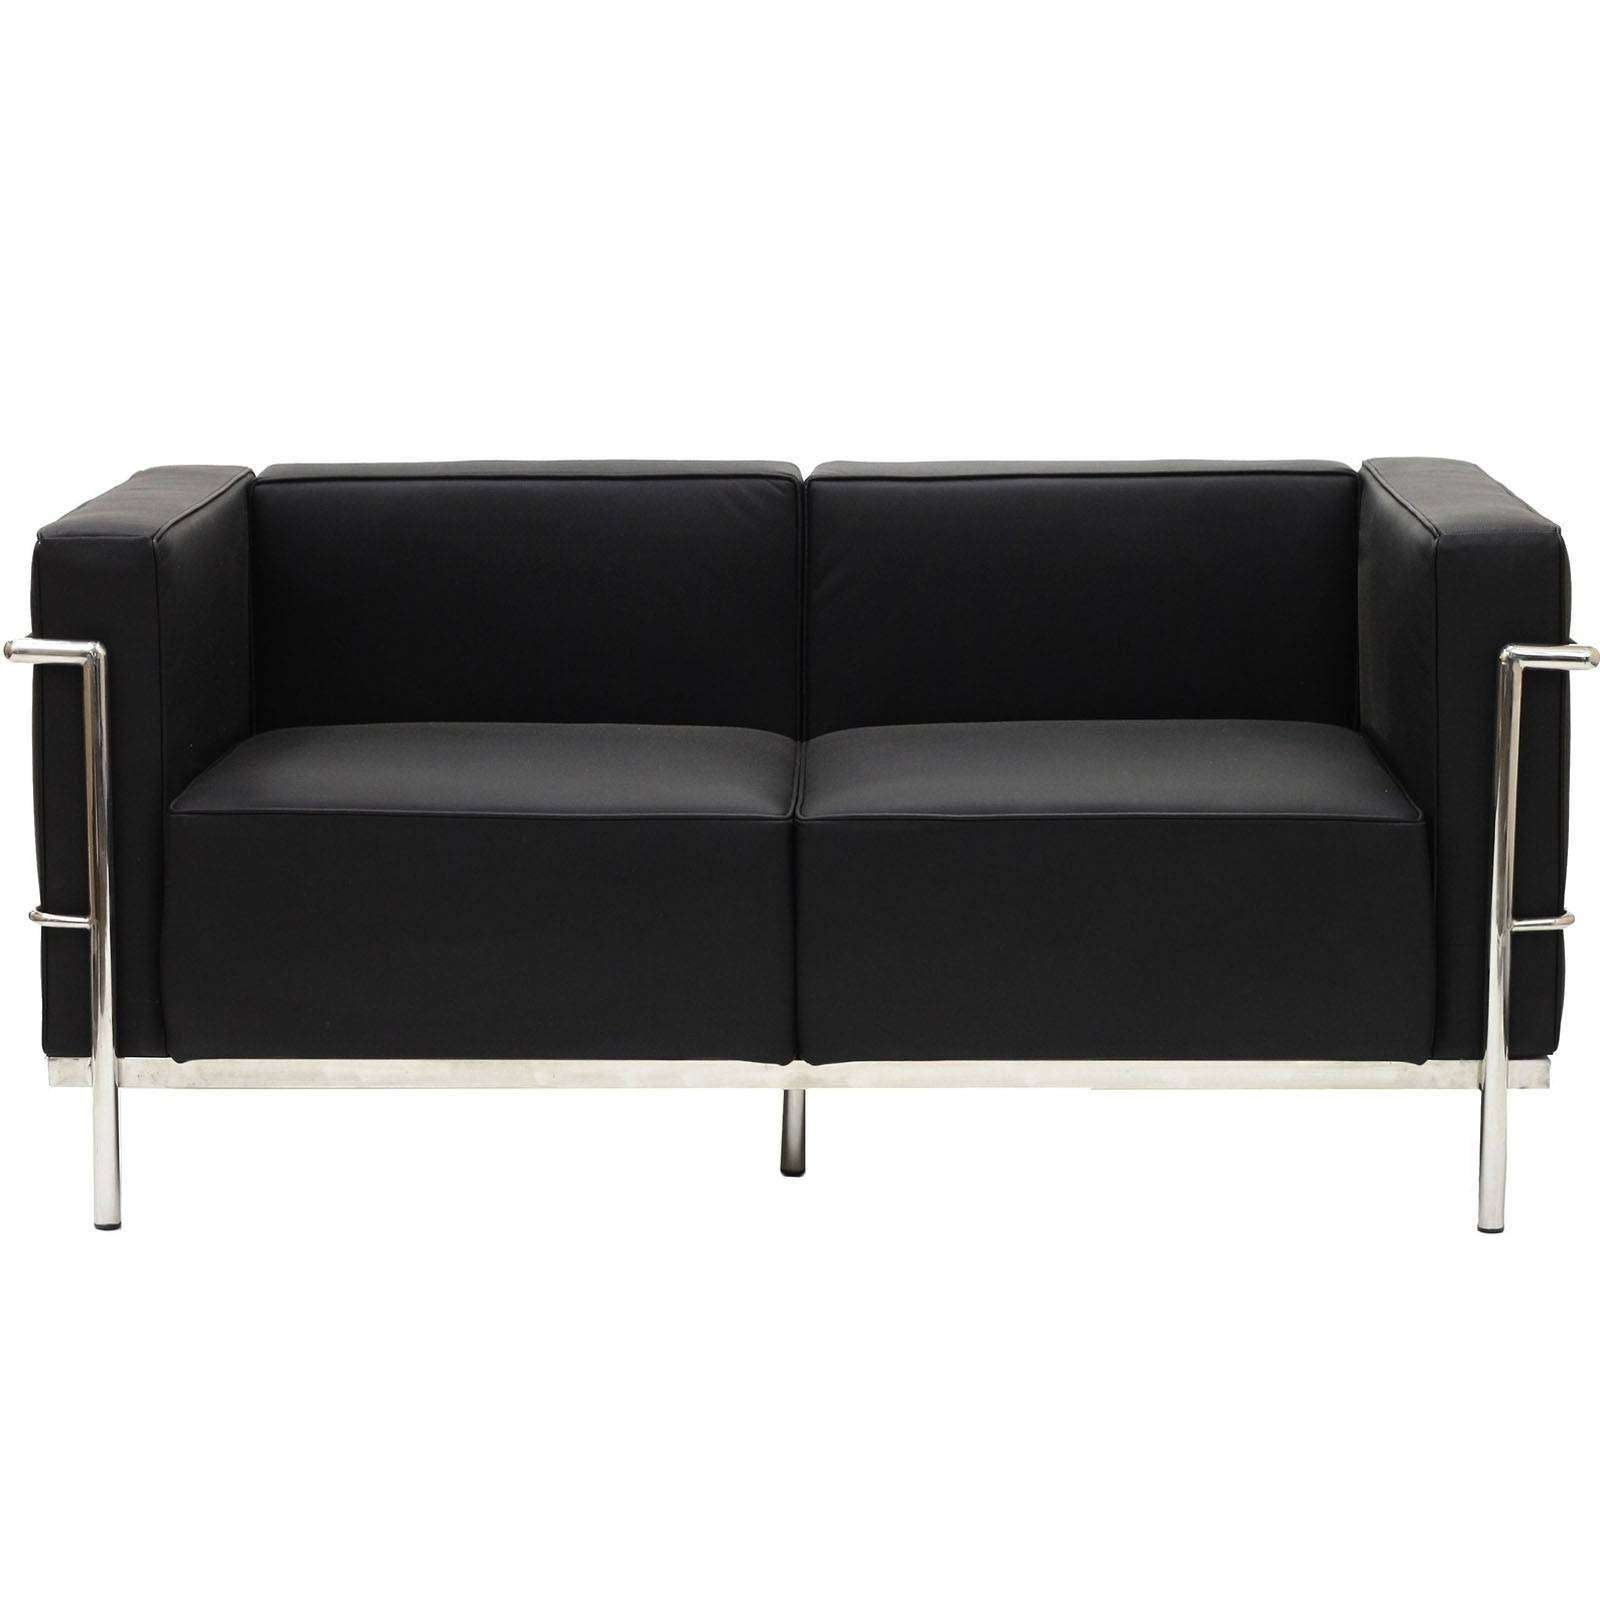 Le Corbusier Stil : le corbusier style lc3 loveseat leather ~ Michelbontemps.com Haus und Dekorationen